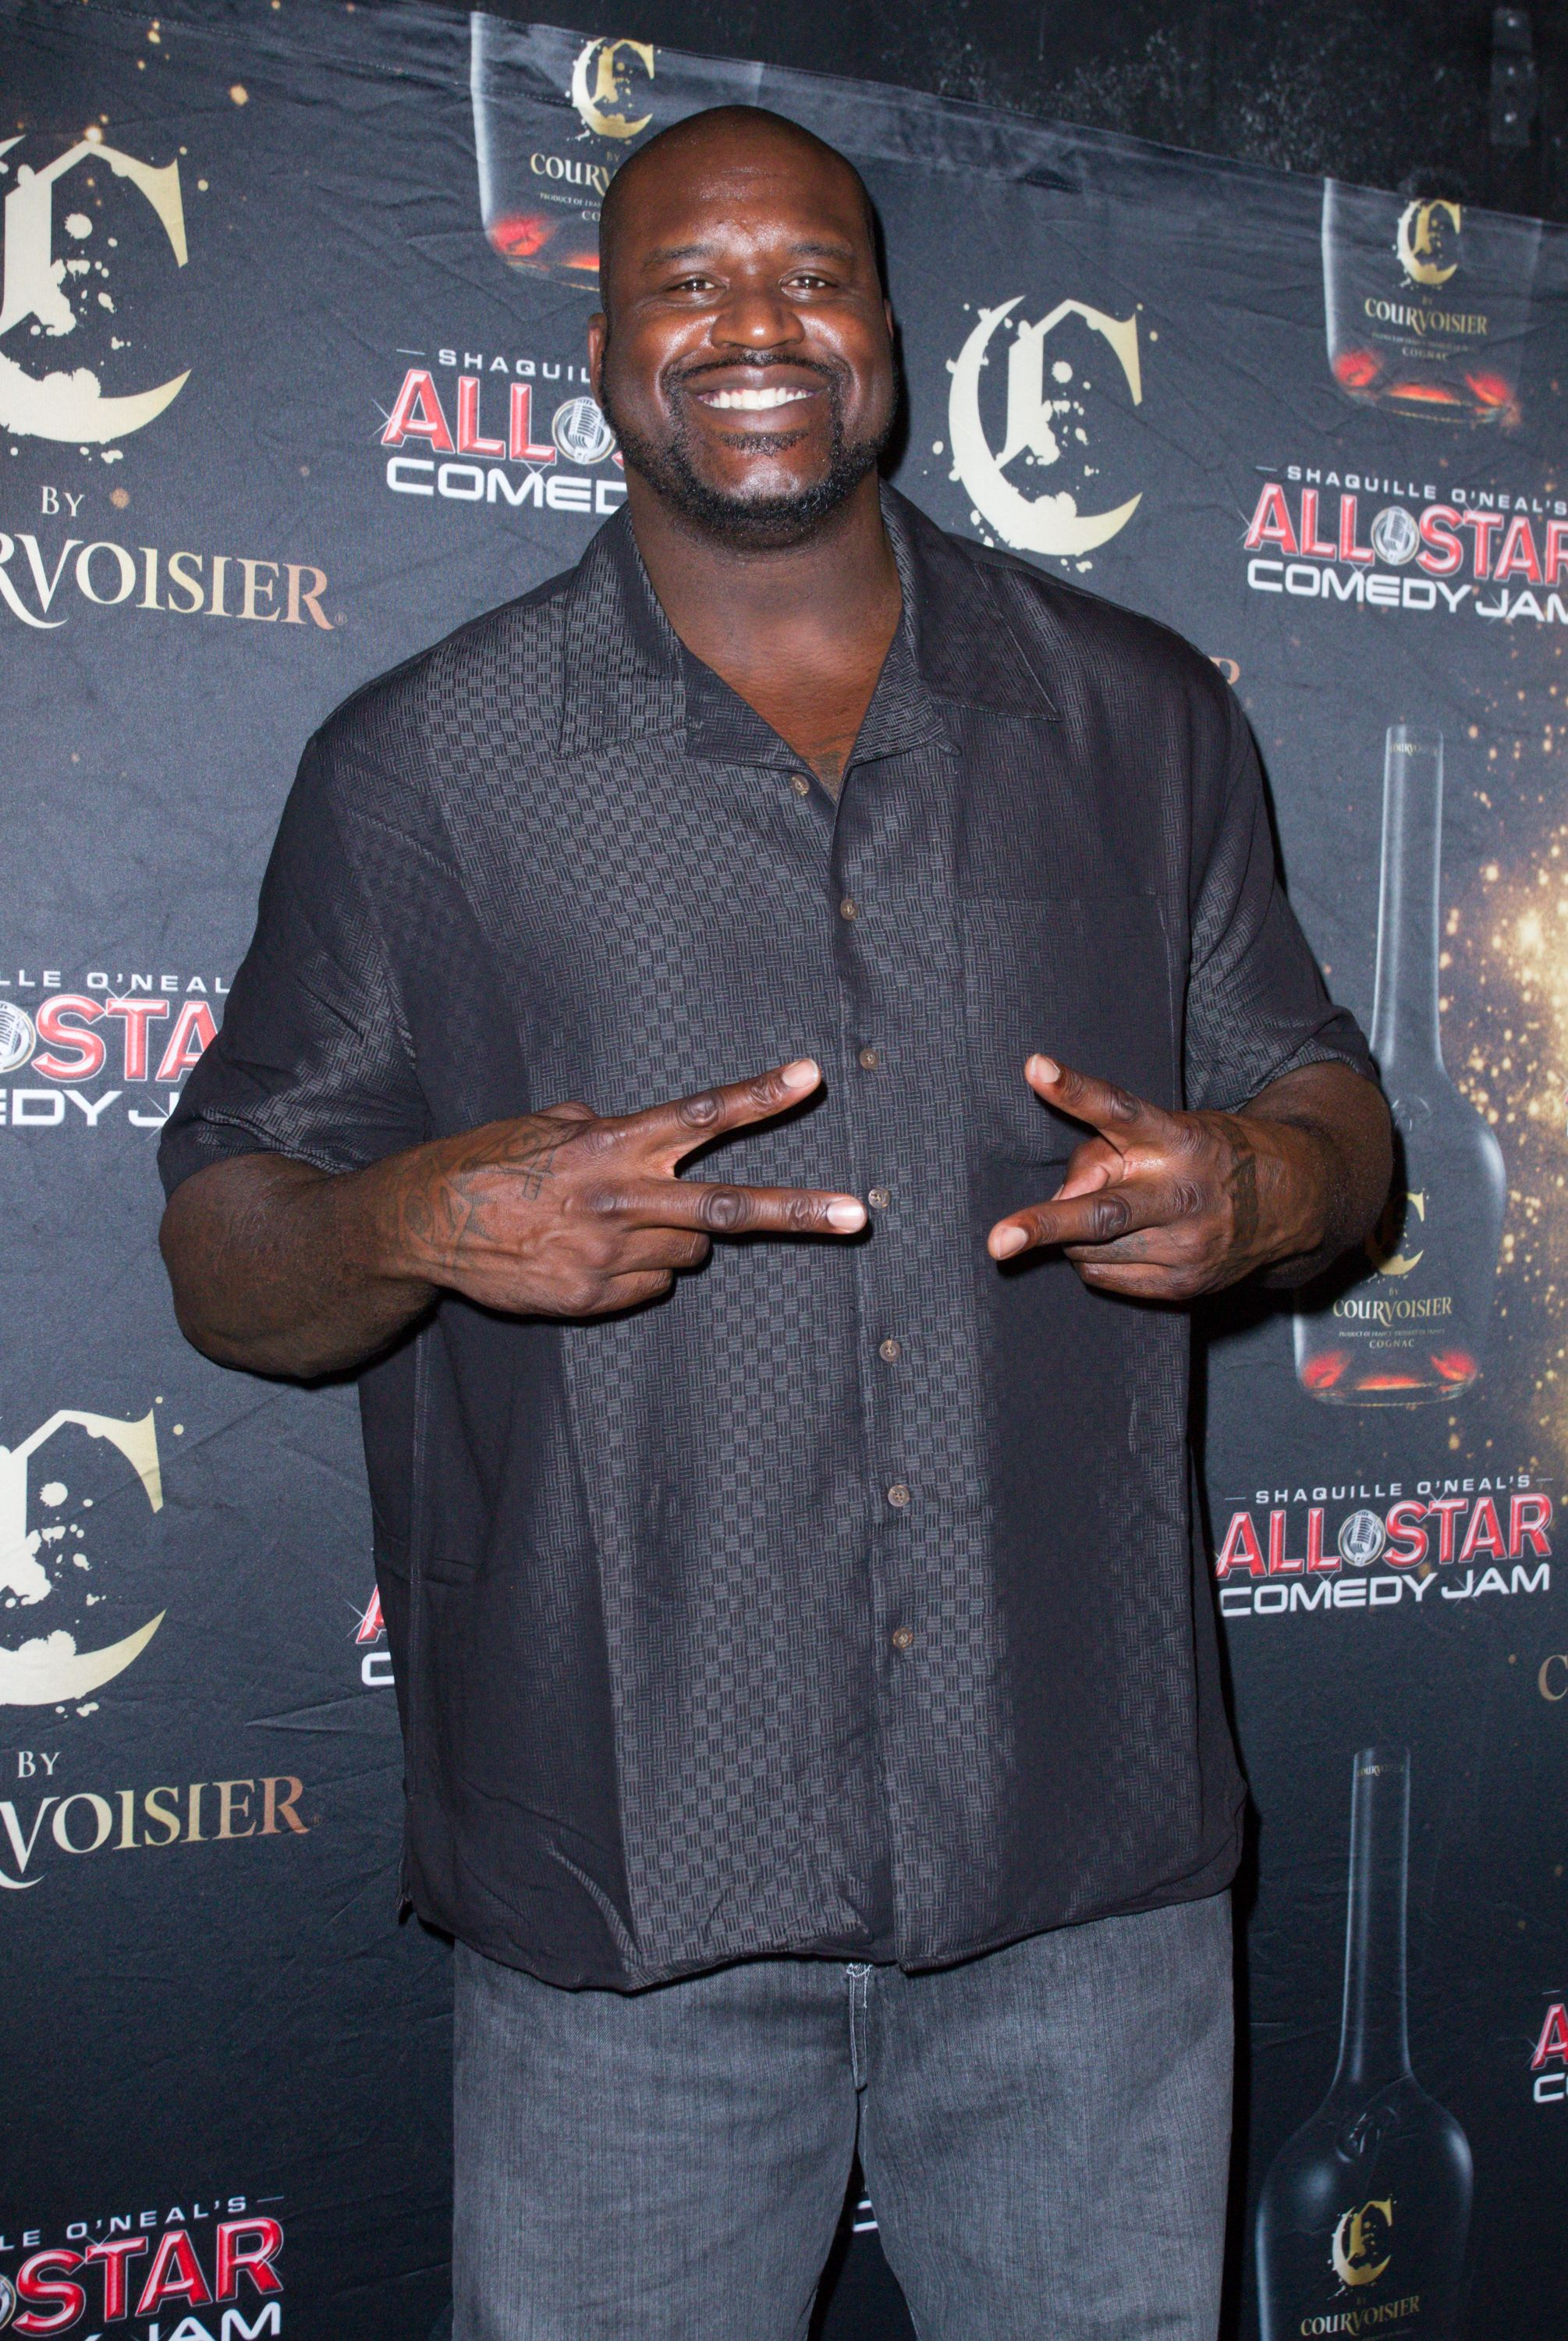 Shaquille O' Neal during the All Star Comedy Jam Holiday Celebration on December 15, 2012 in Miami, Florida.   Source: Getty Images